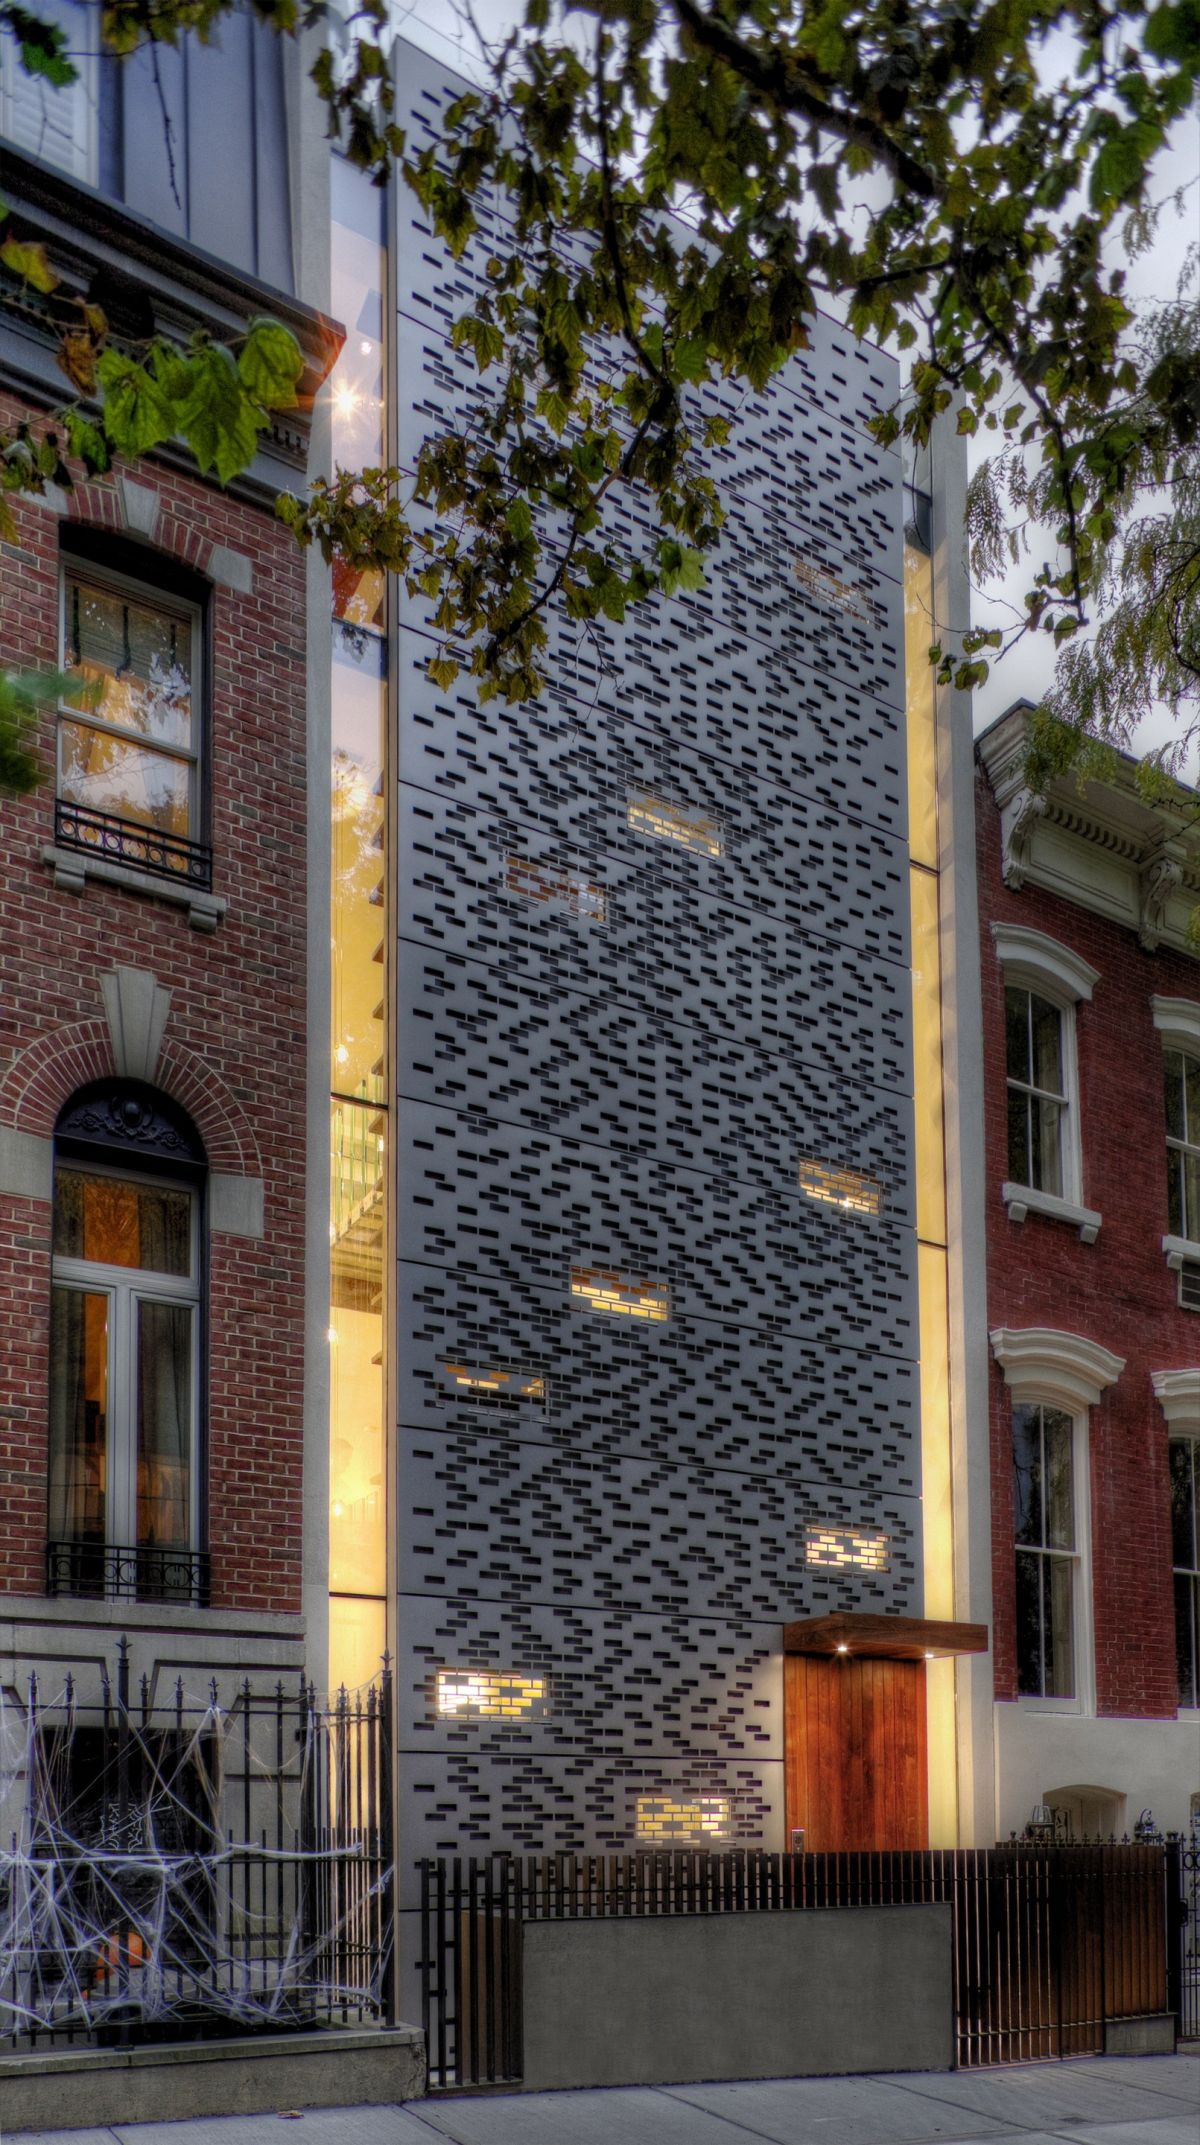 Urban townhouse design with a metalic perforated facade